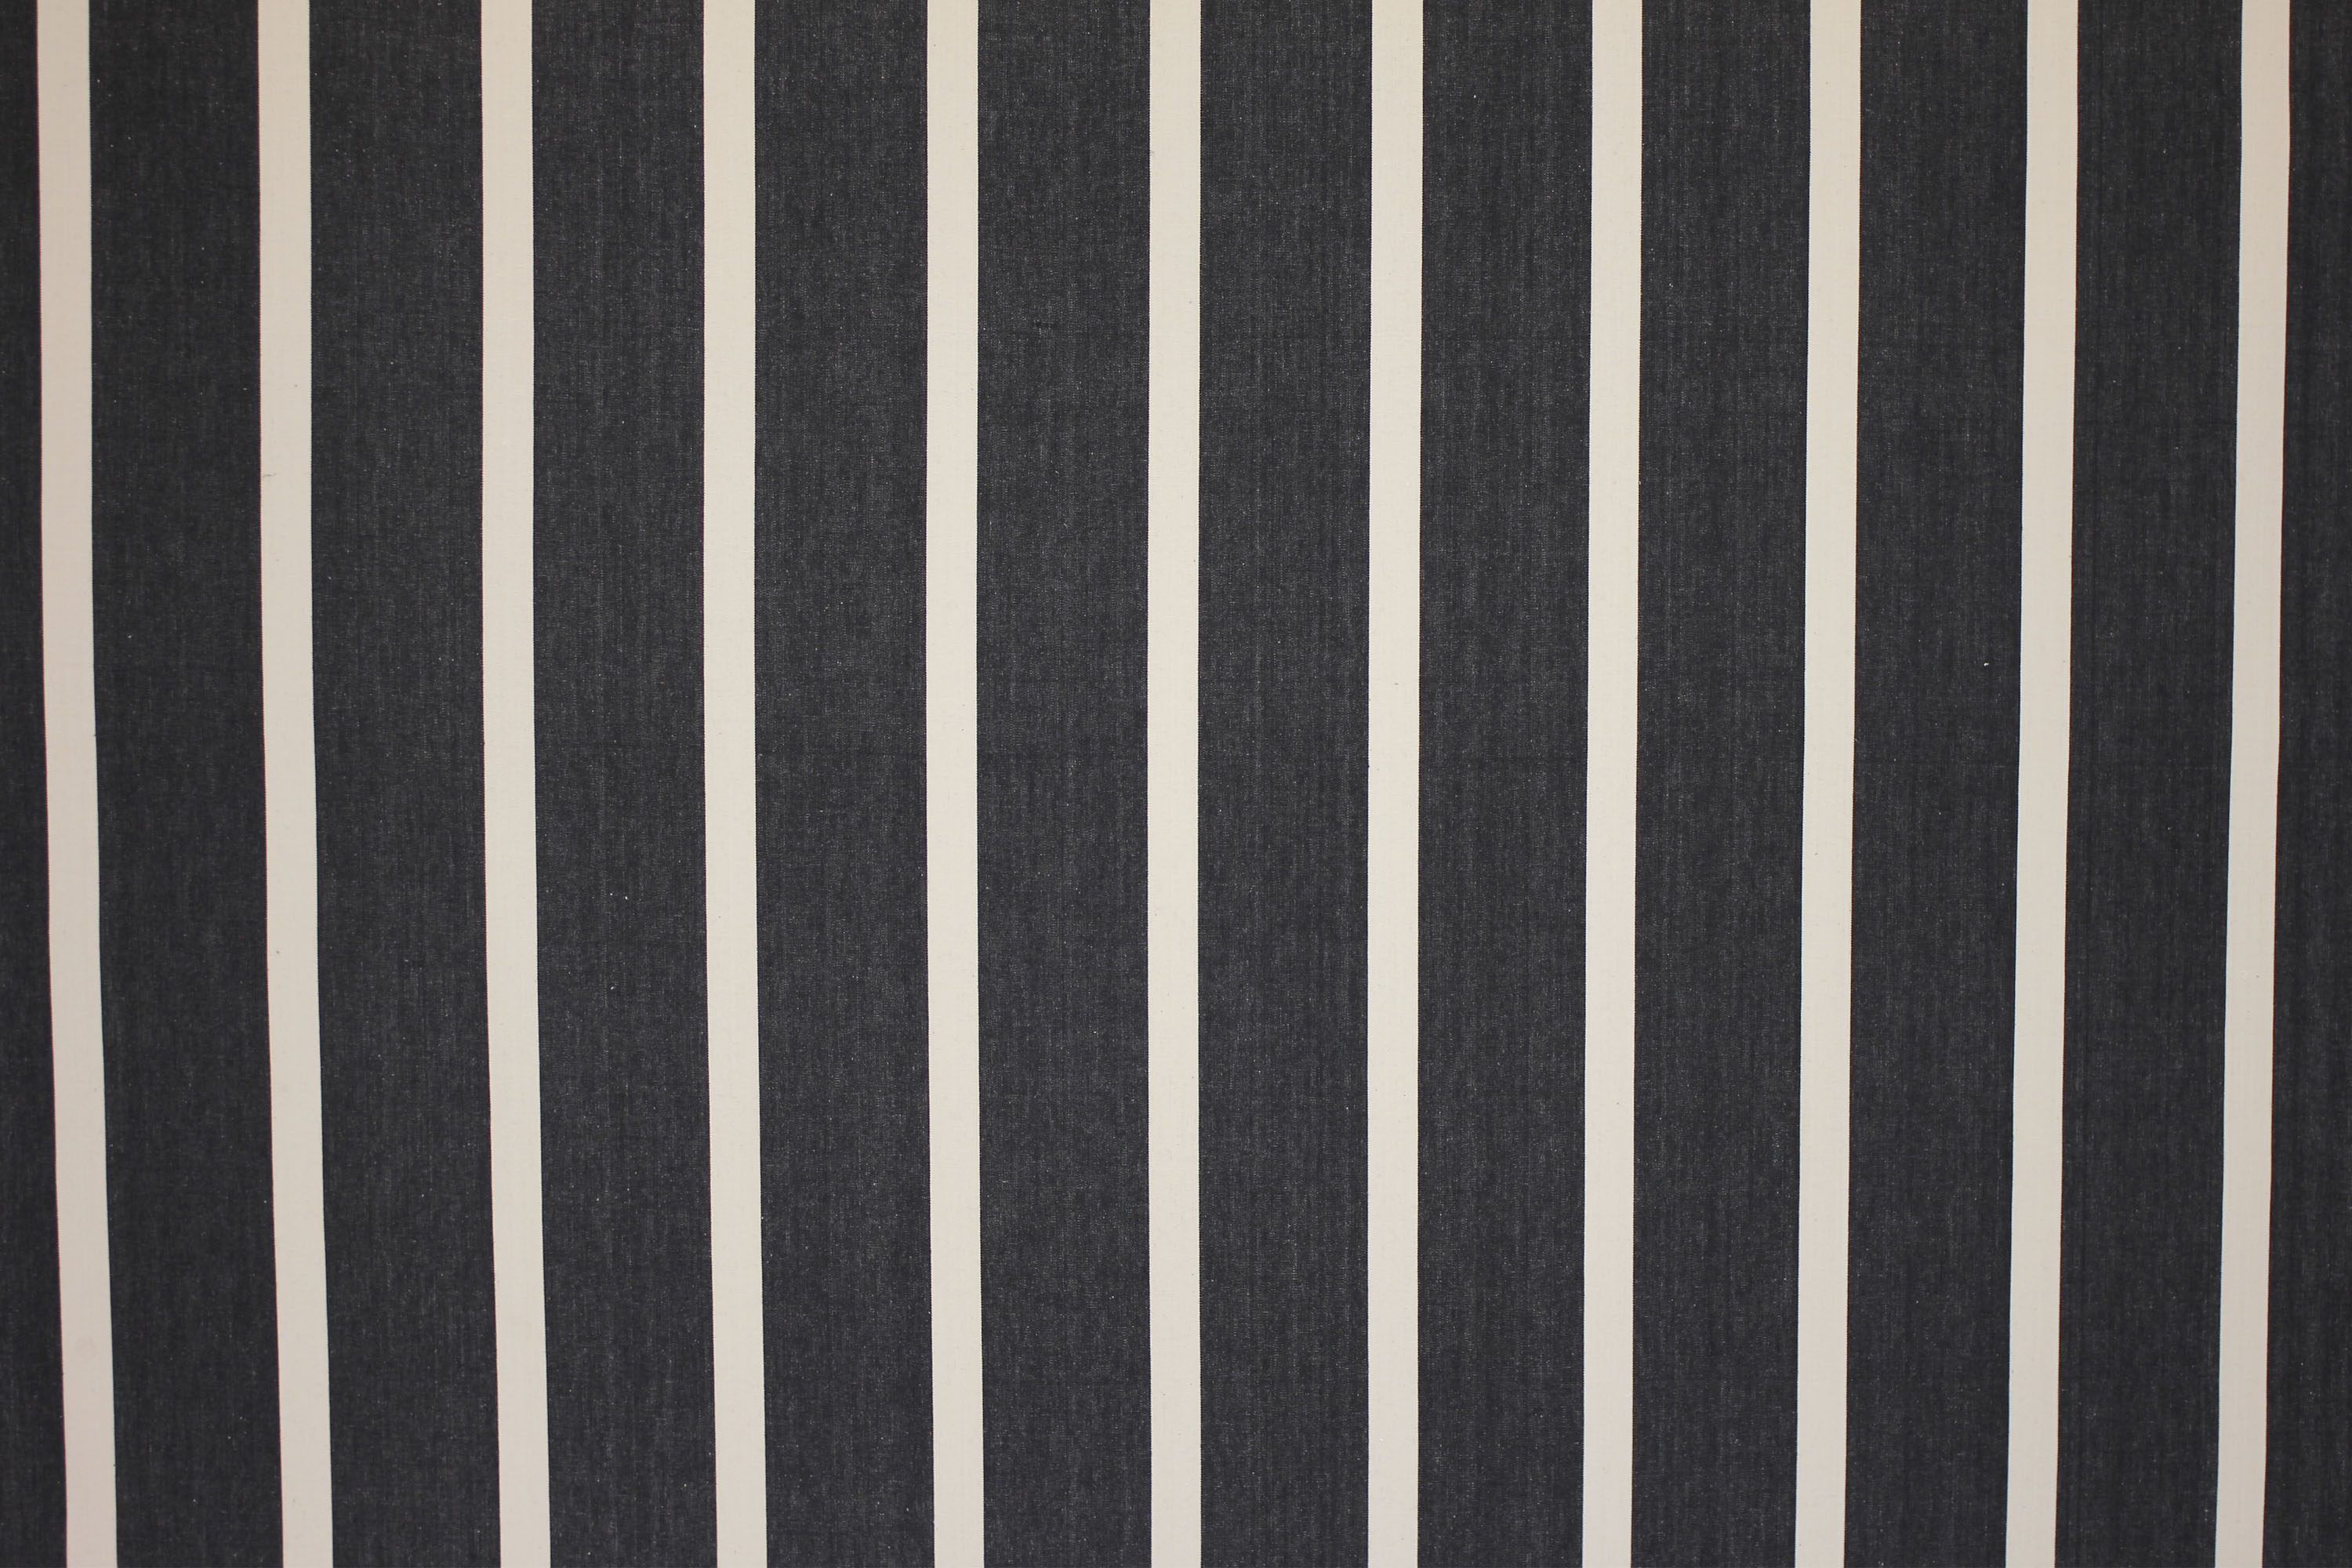 Black Striped Fabrics | Stripe Cotton Fabrics | Striped Curtain Fabrics | Upholstery Fabrics  Judo Stripes